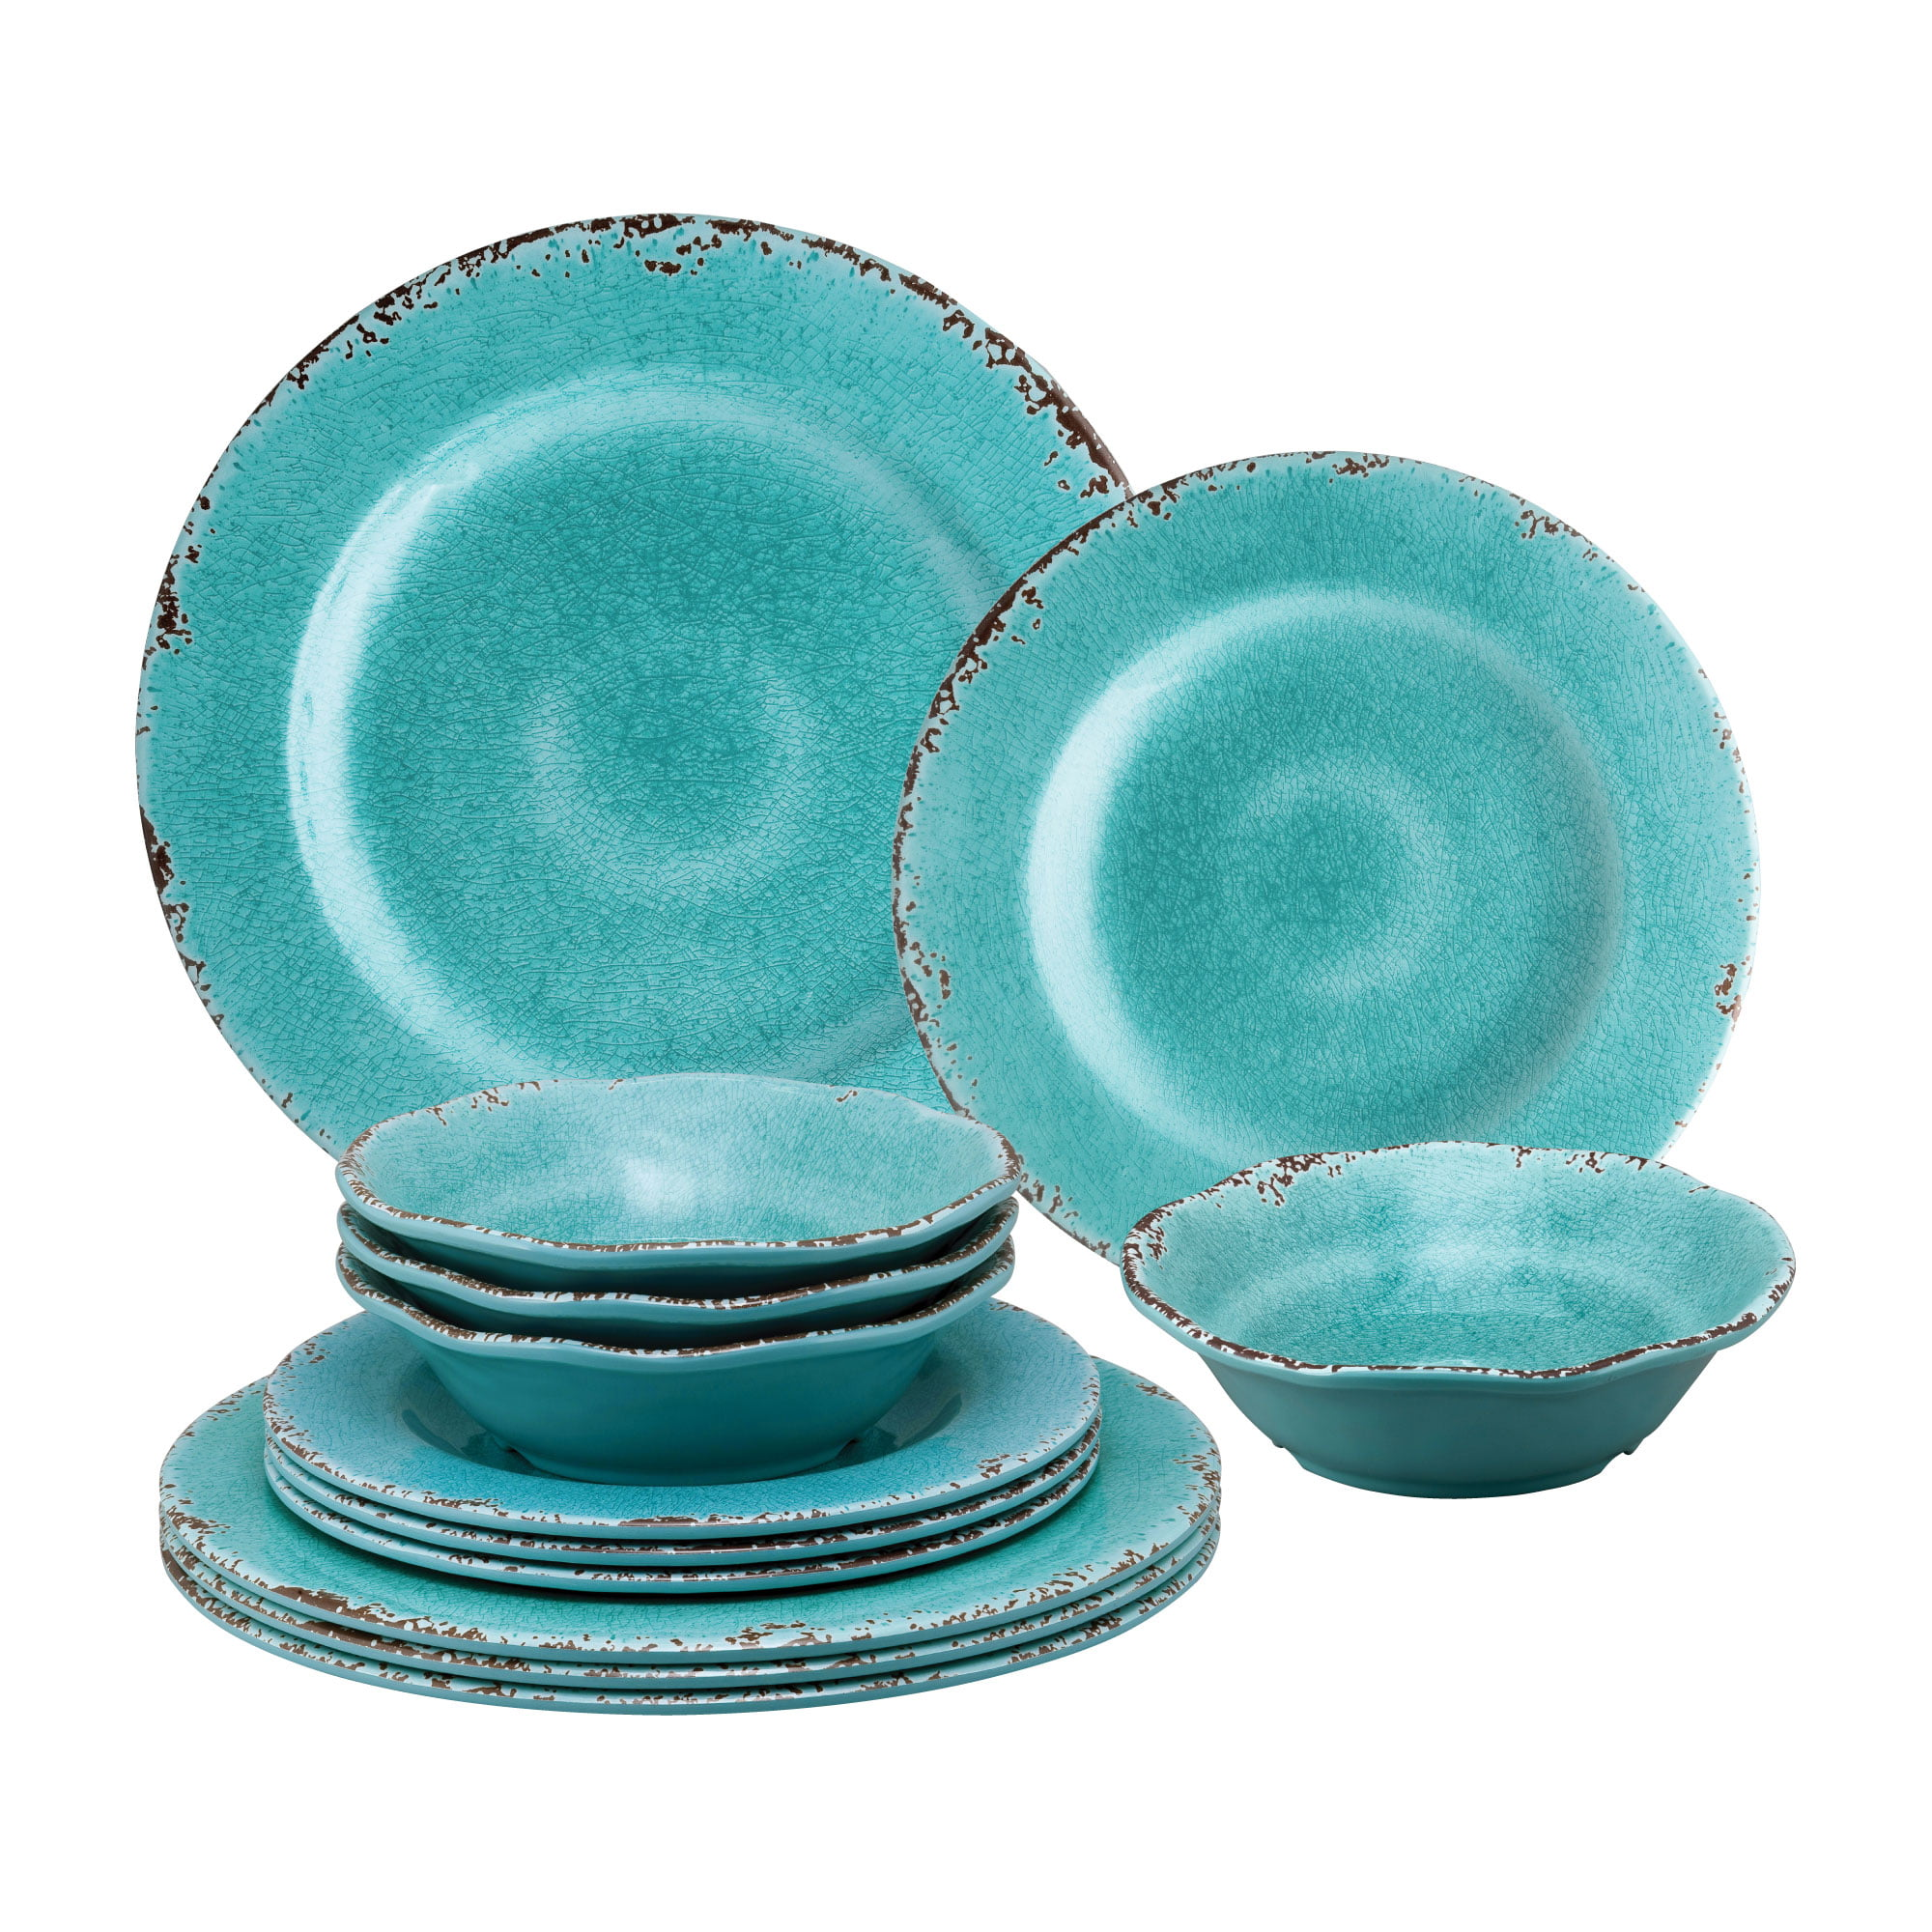 Gourmet Art 12 Piece Crackle Melamine Dinnerware Set Turquoise Service For 4 Includes Dinner Plates Salad Plates And Bowls Walmart Com Walmart Com